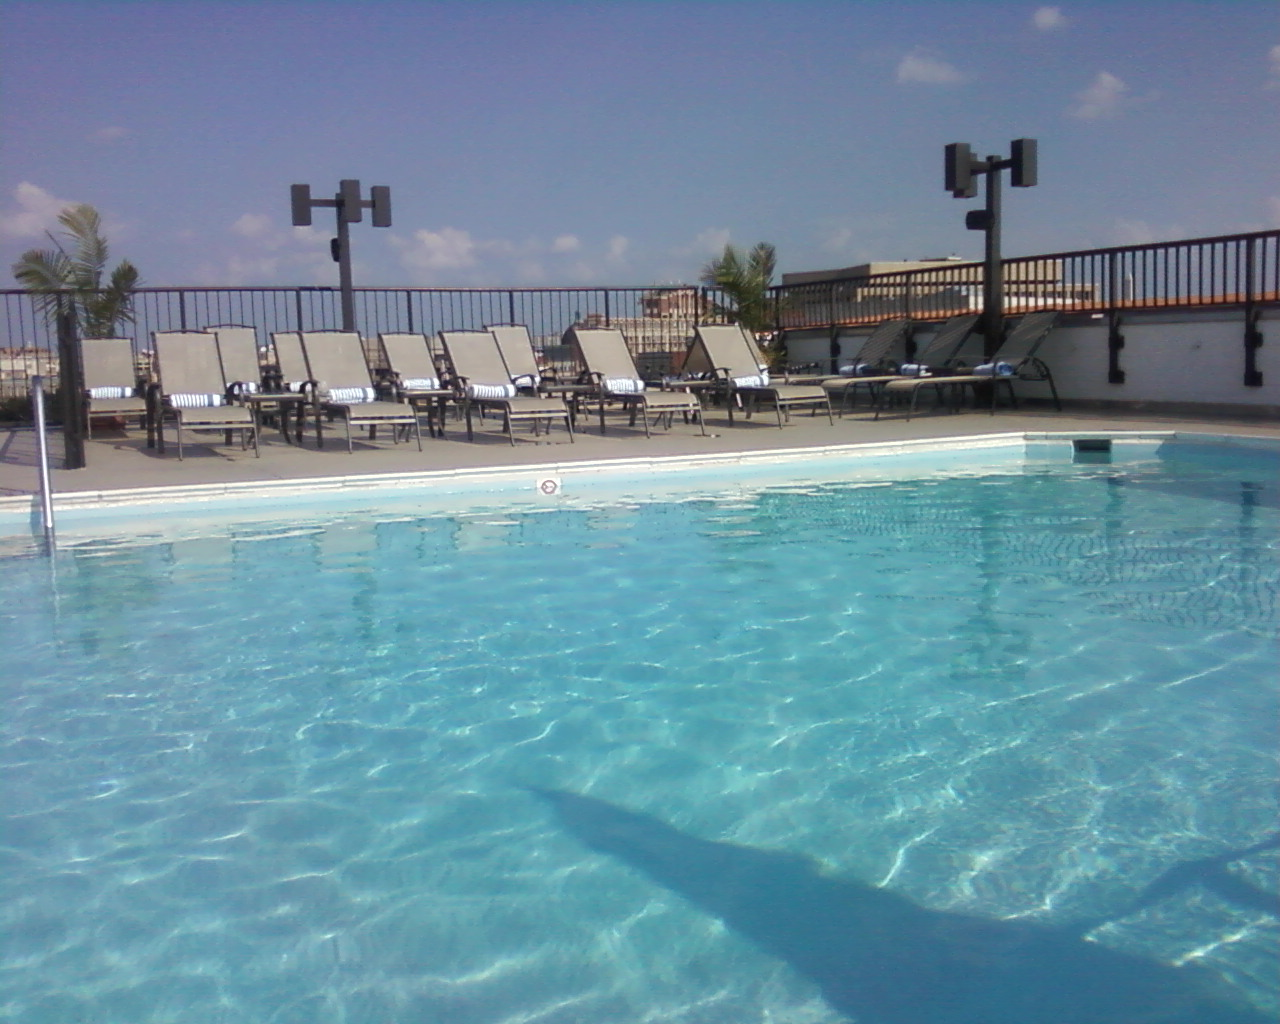 Uncomfortable moments pools you can use hilton embassy suites for Swimming pools open today near me